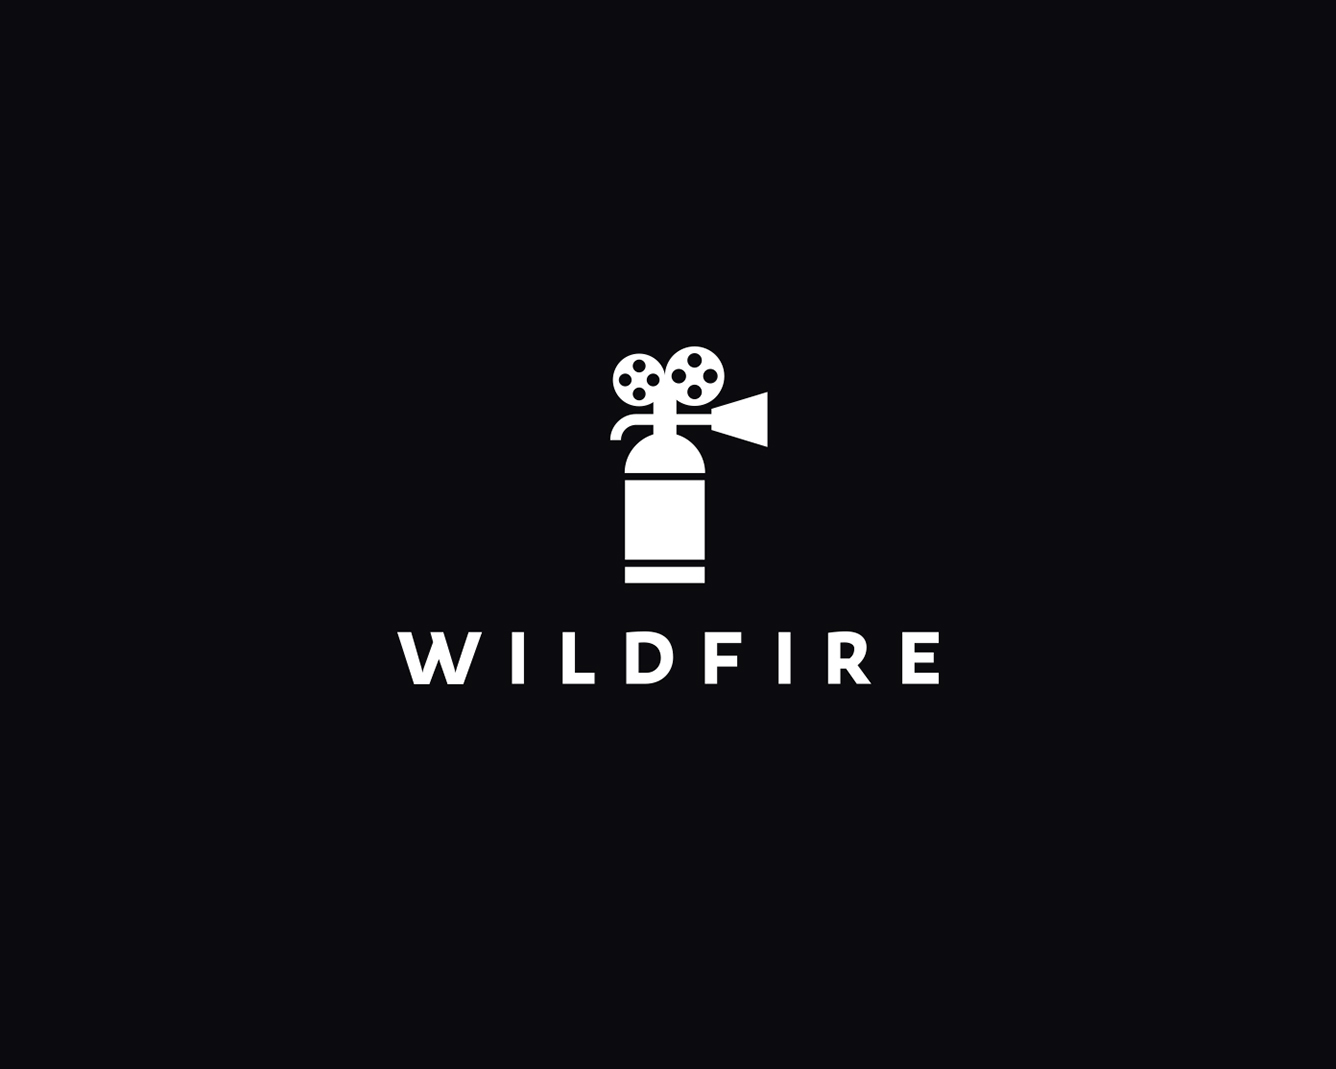 Designer creates logos with hidden meanings - 11